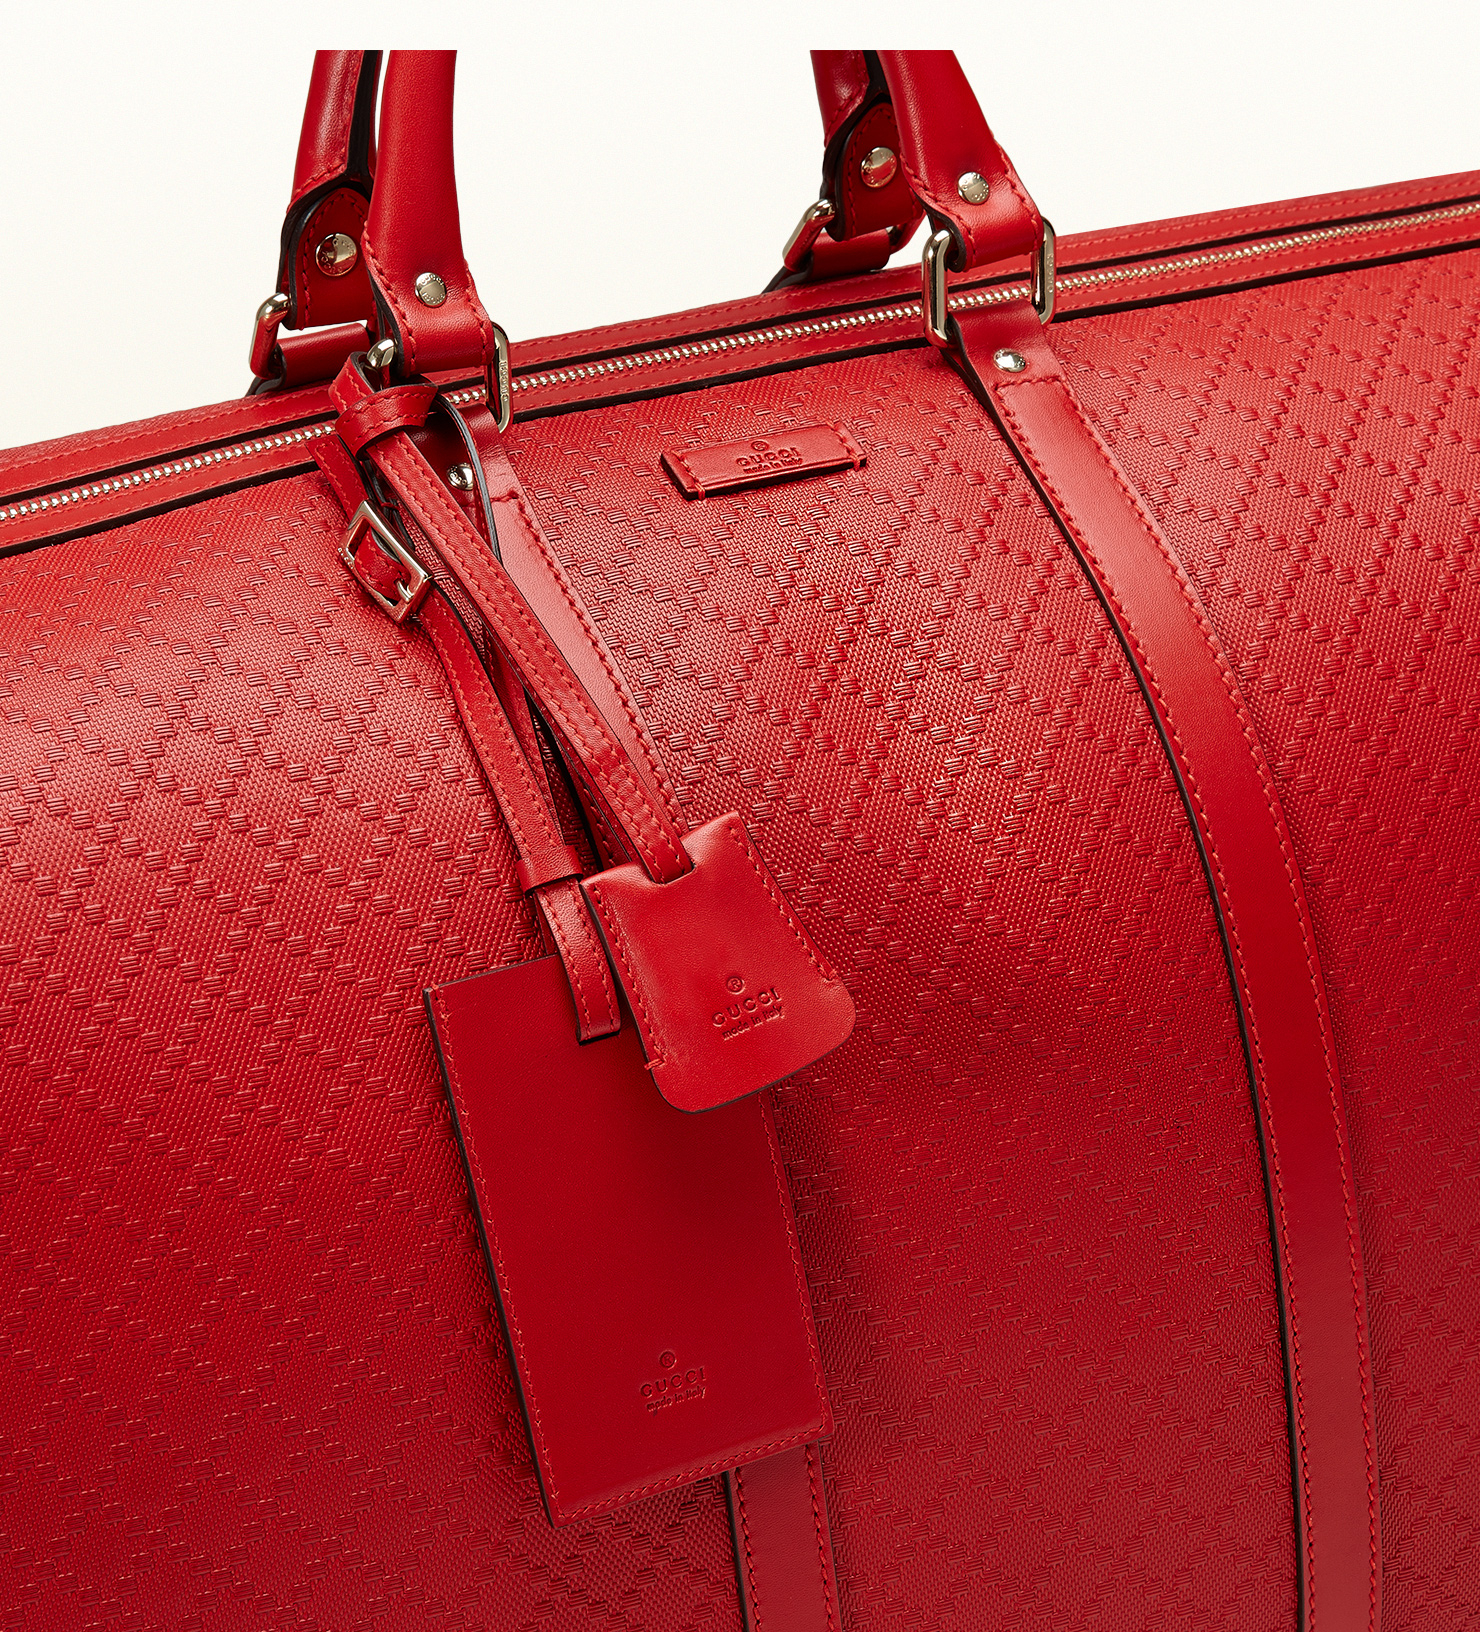 e2009b70de3 Gucci Bright Diamante Leather Carry-on Duffle Bag in Red - Lyst